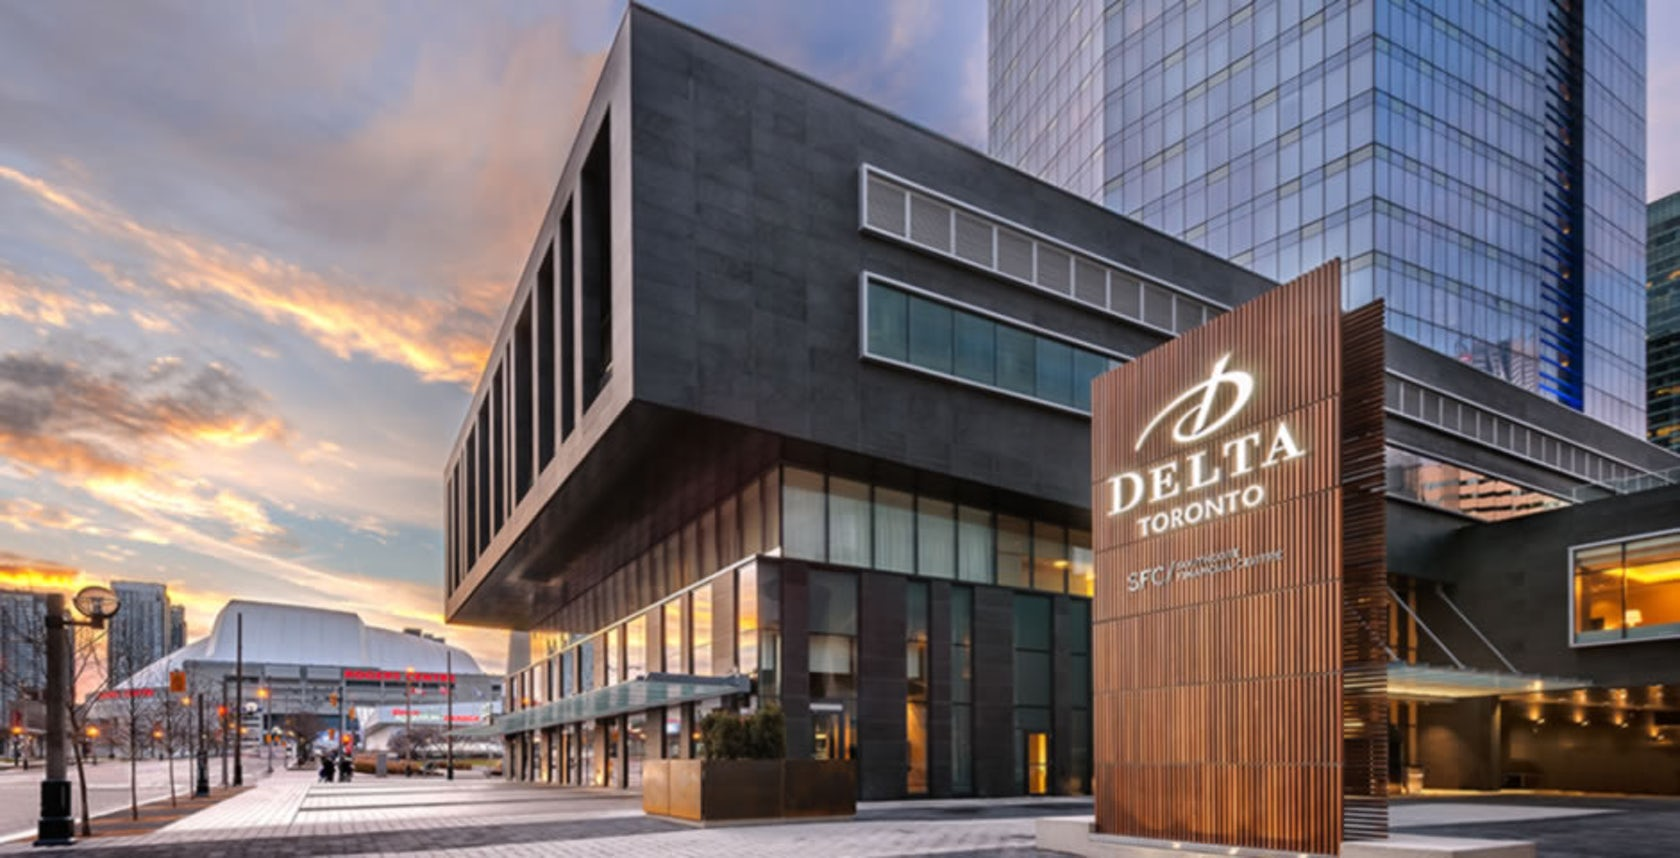 Guests Will Be Inspired At The New Toronto Marriott: Delta Toronto